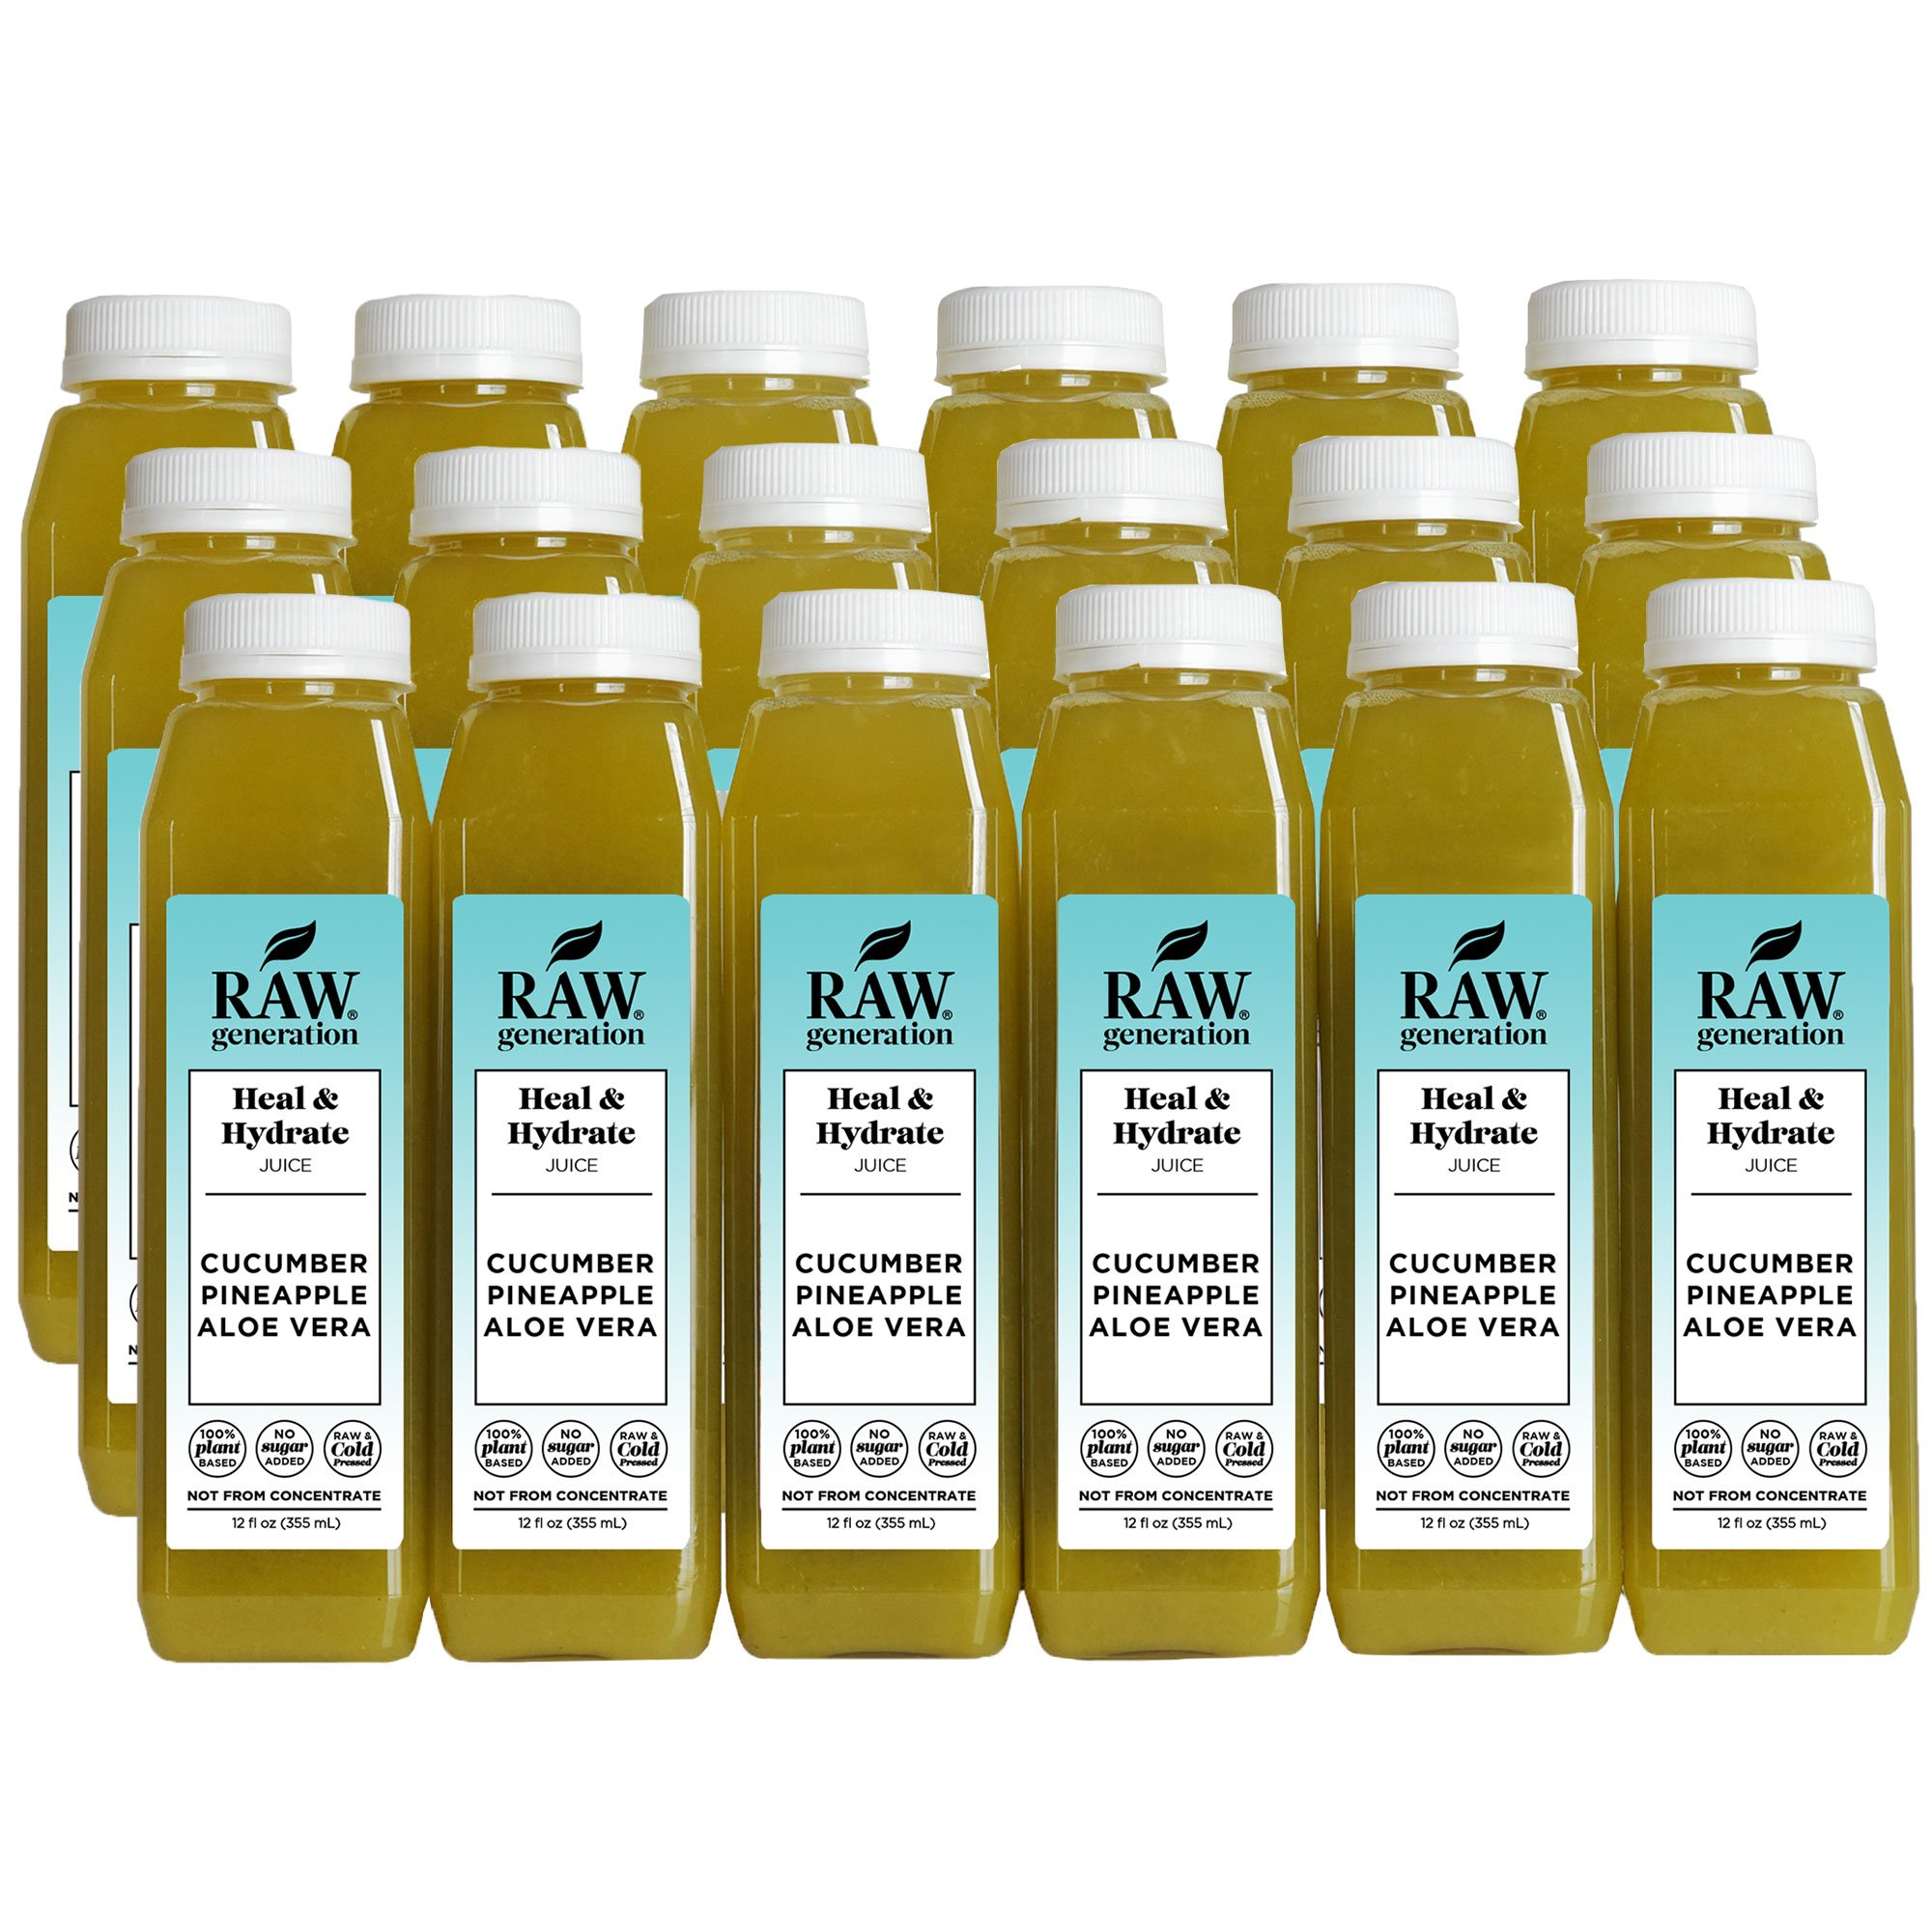 Raw Generation Heal & Hydrate Juice - Healthiest Way to Lose Weight & Stay Strong - Plant-Based Protein Smoothies & Juices - FREE Shipping (18)